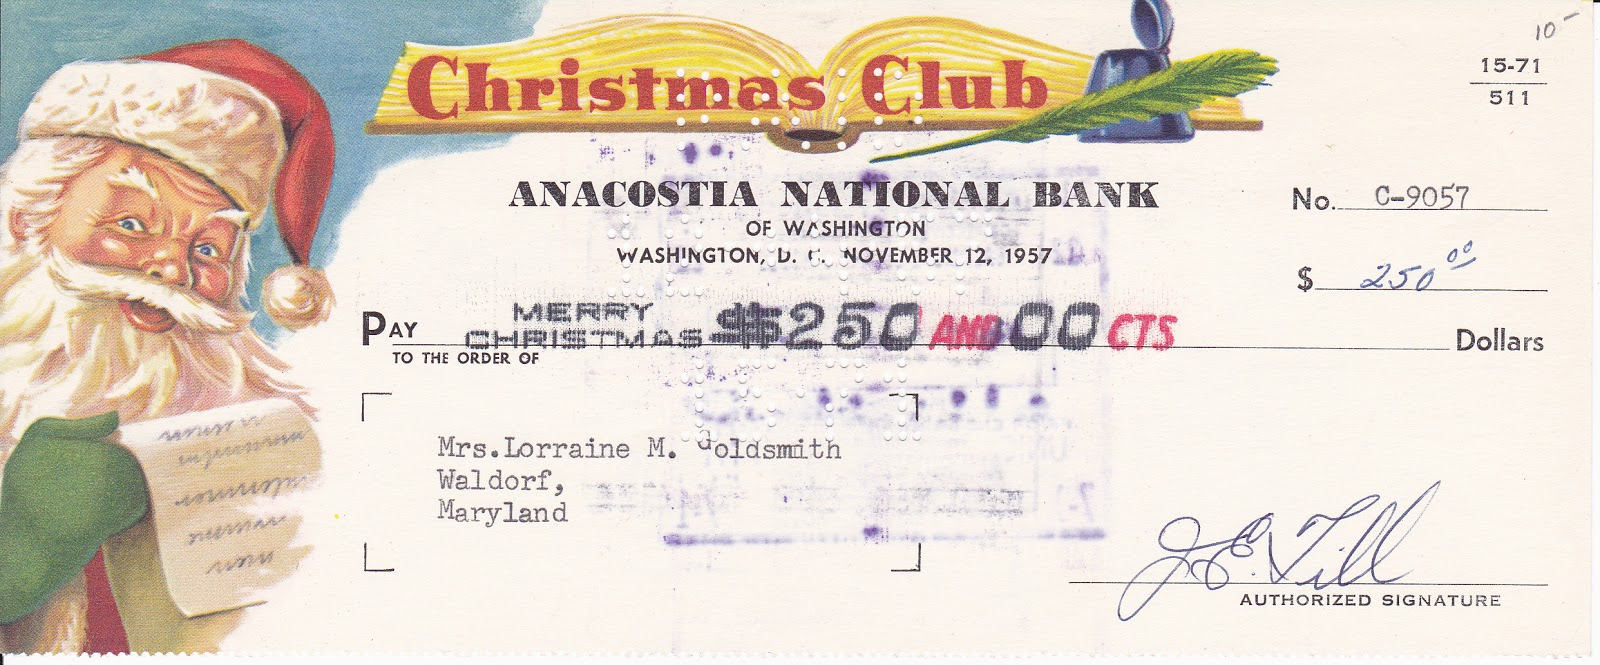 Bob Lemke's Blog: Collecting colorful Christmas Club checks